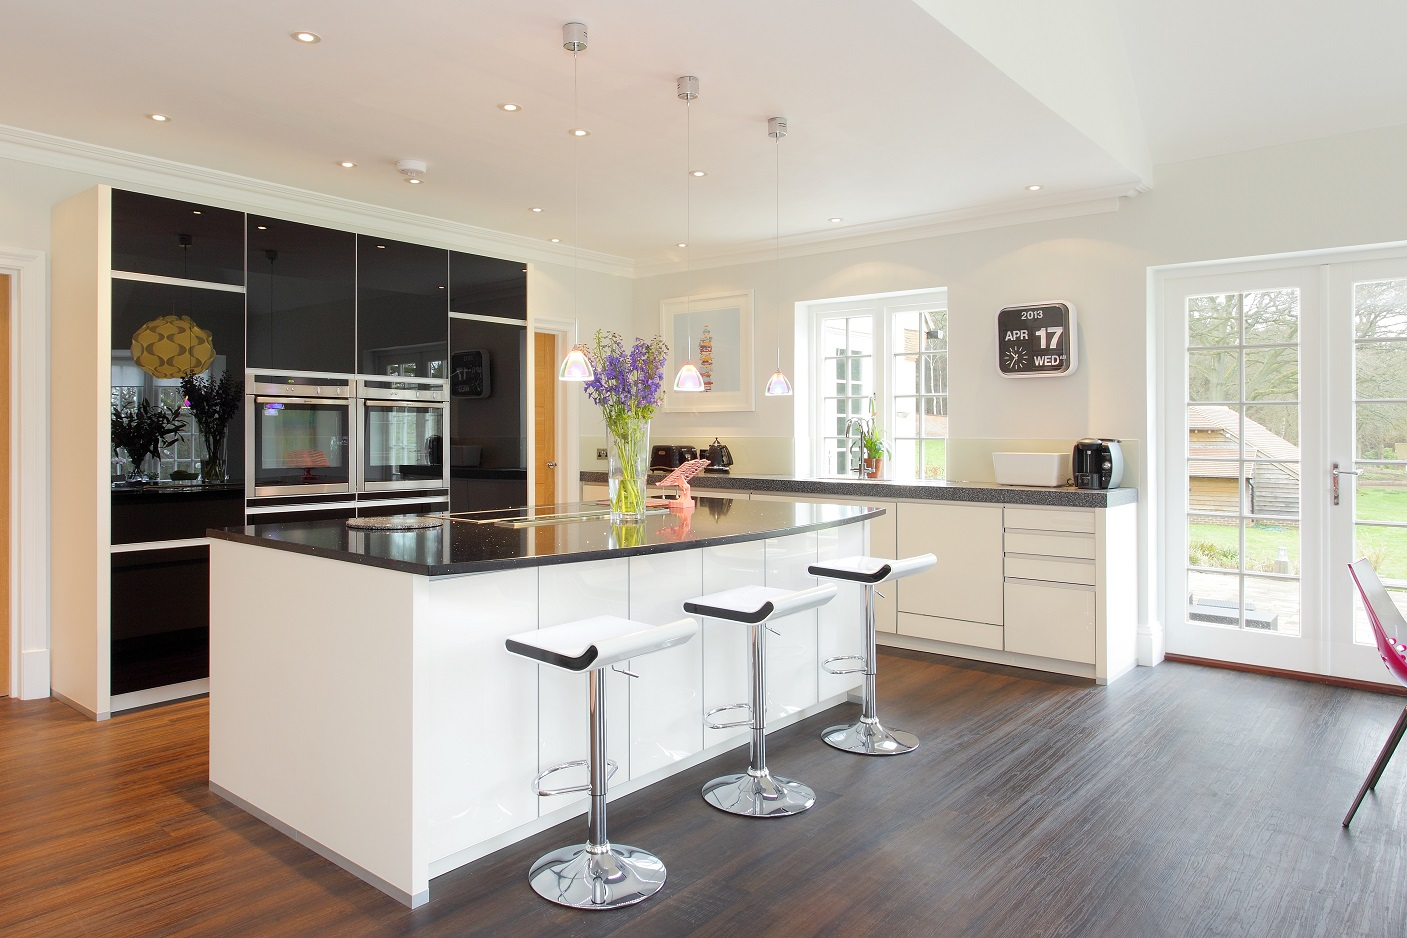 ALNOARTPRO kitchen in Farnham, Surrey designed and installed by Hampshire Kitchens